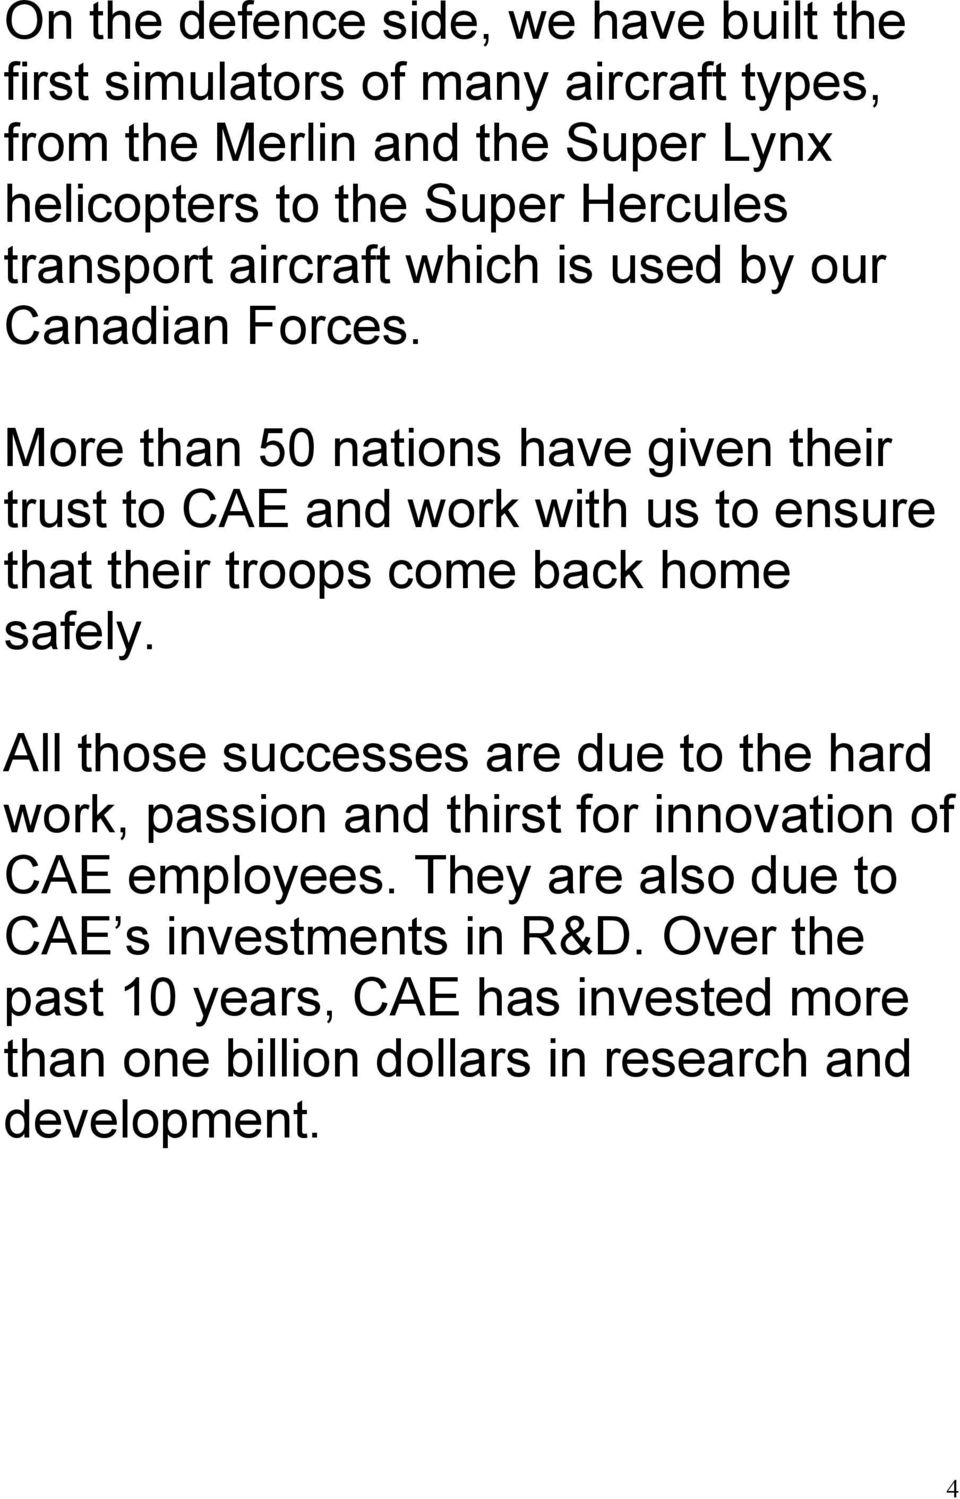 More than 50 nations have given their trust to CAE and work with us to ensure that their troops come back home safely.